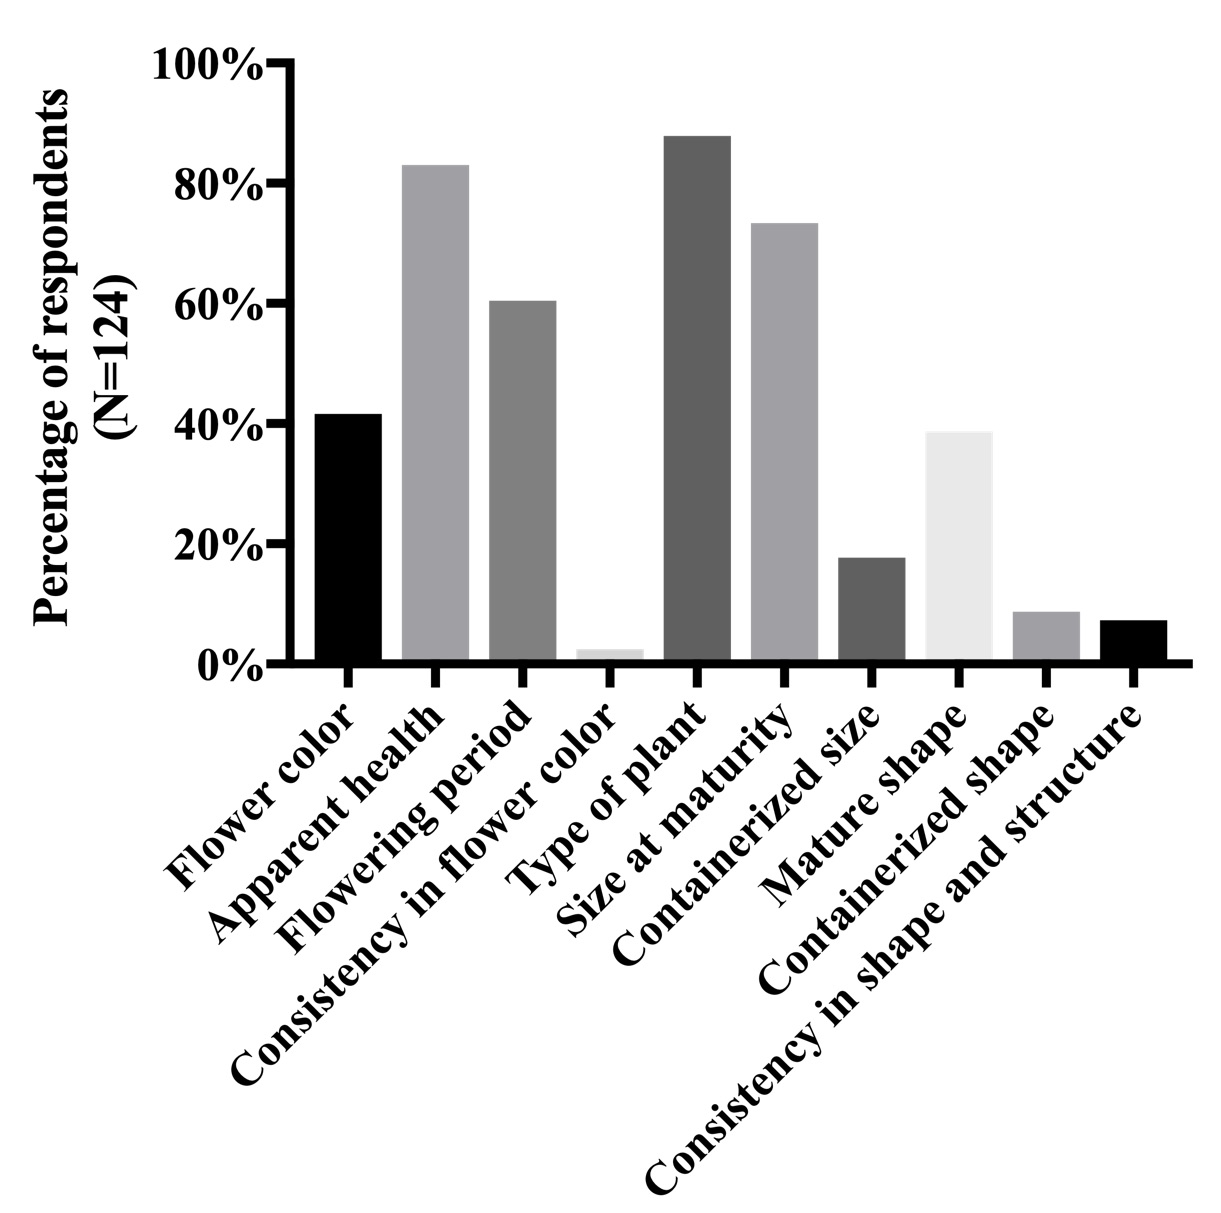 - Figure 3: Ranking of desirable plant characteristics by respondents (N=124). Results indicate that the type of plant and the apparent health of nursery stock are significantly more important to consumers than consistency in flower color or the mature shape of a native plant. However, general plant characteristics such as flowering period and mature size are also important considerations when choosing native plants, reflecting aesthetic elements common in urban landscape design.